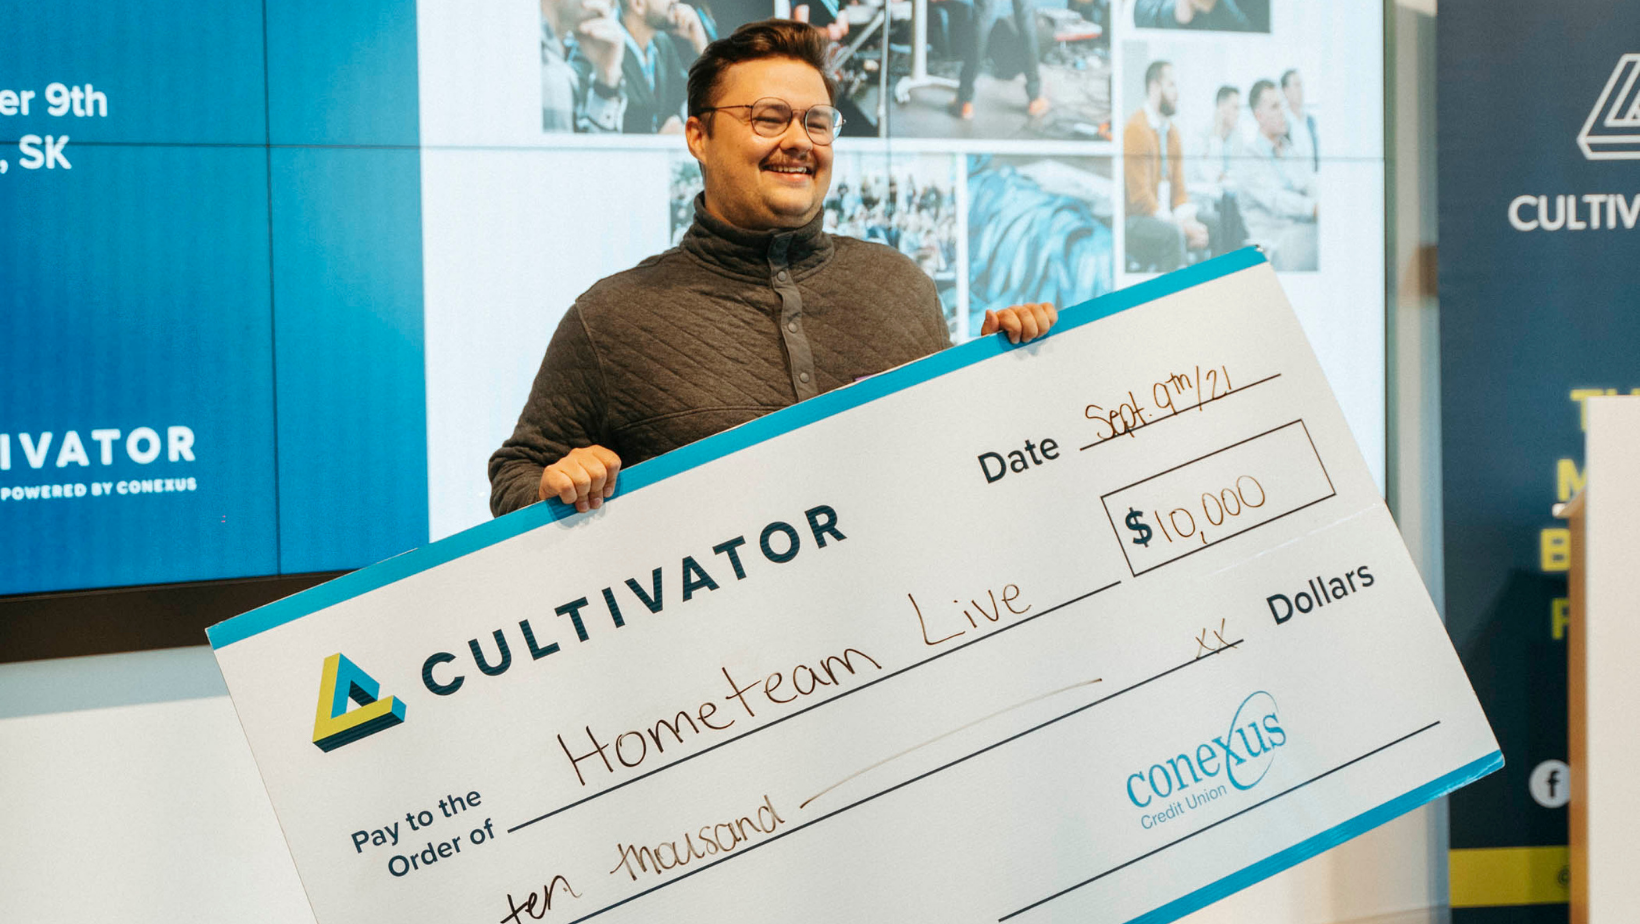 Tanner Goetz, founder of HomeTeam Live, smiling with $10,000 cheque